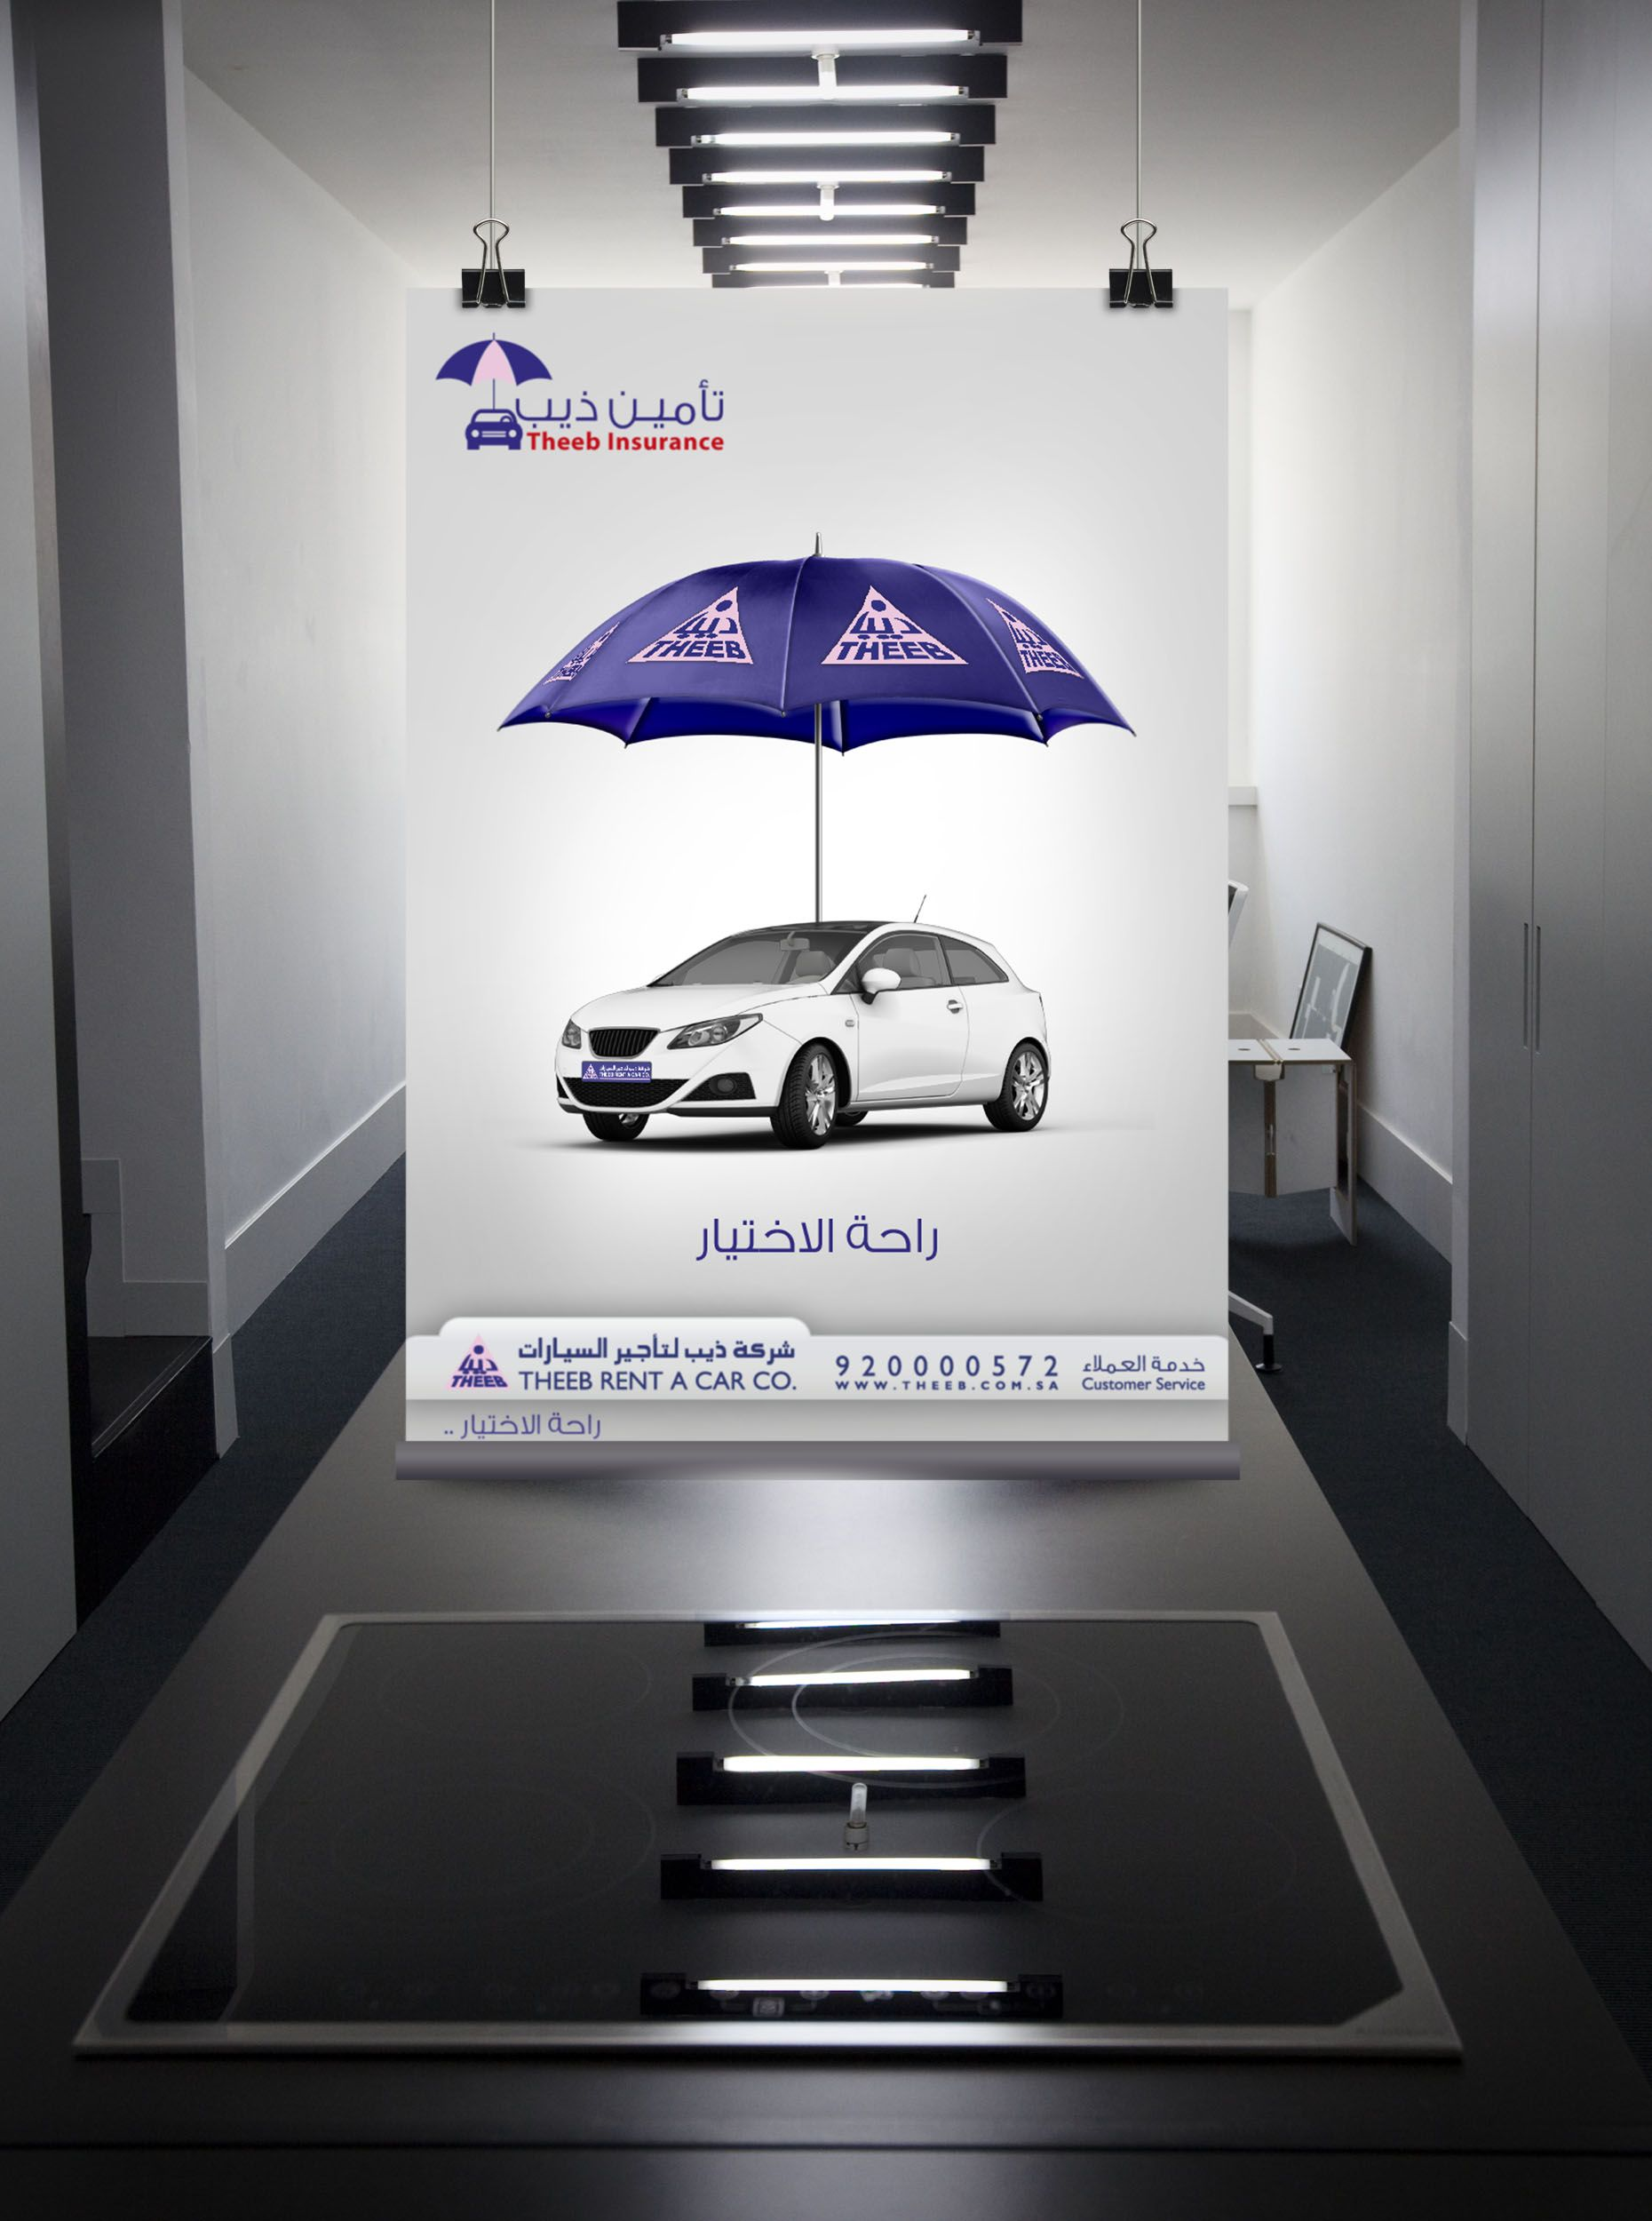 Poster About Insurance Service For Car Rental Company Car Rental